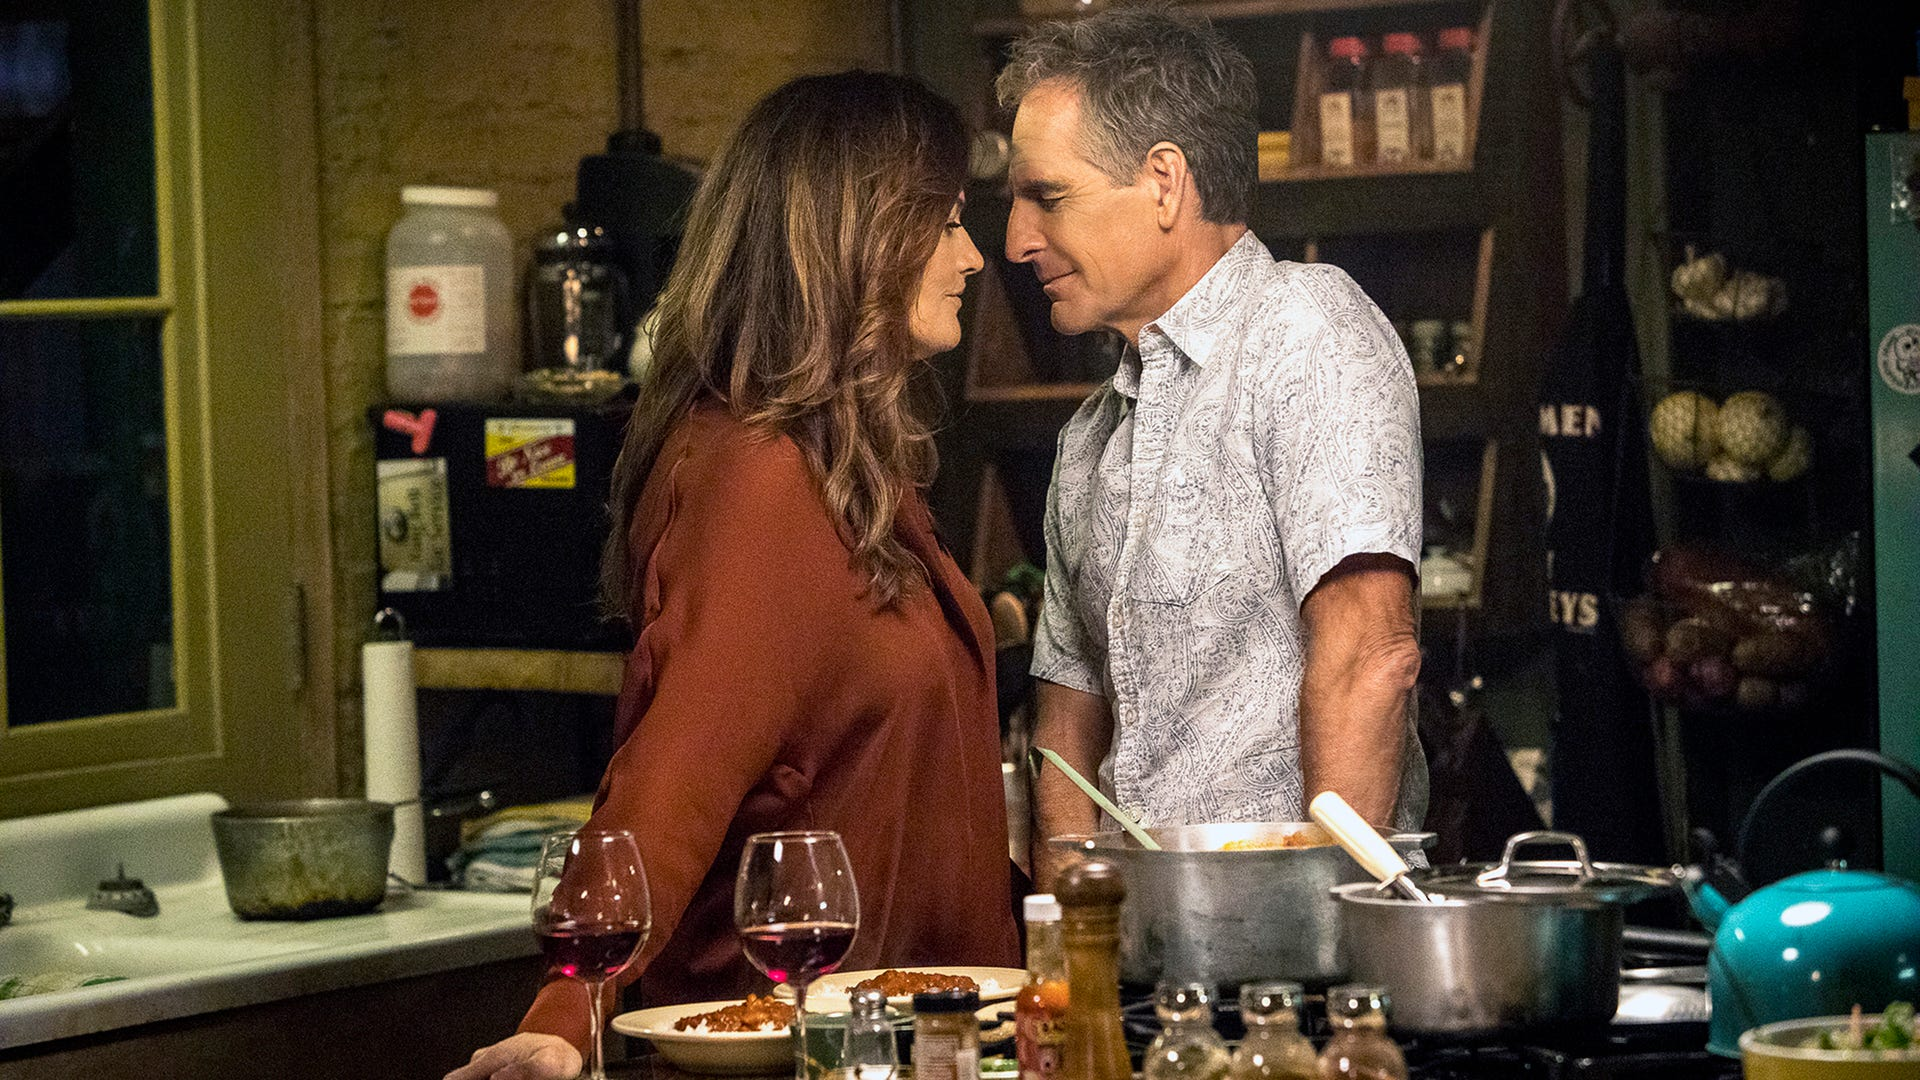 Chelsea Field as ADA and Reserve Navy CDR JAG Corps Rita Devereaux and Scott Bakula as Special Agent Dwayne Pride, NCIS: New Orleans